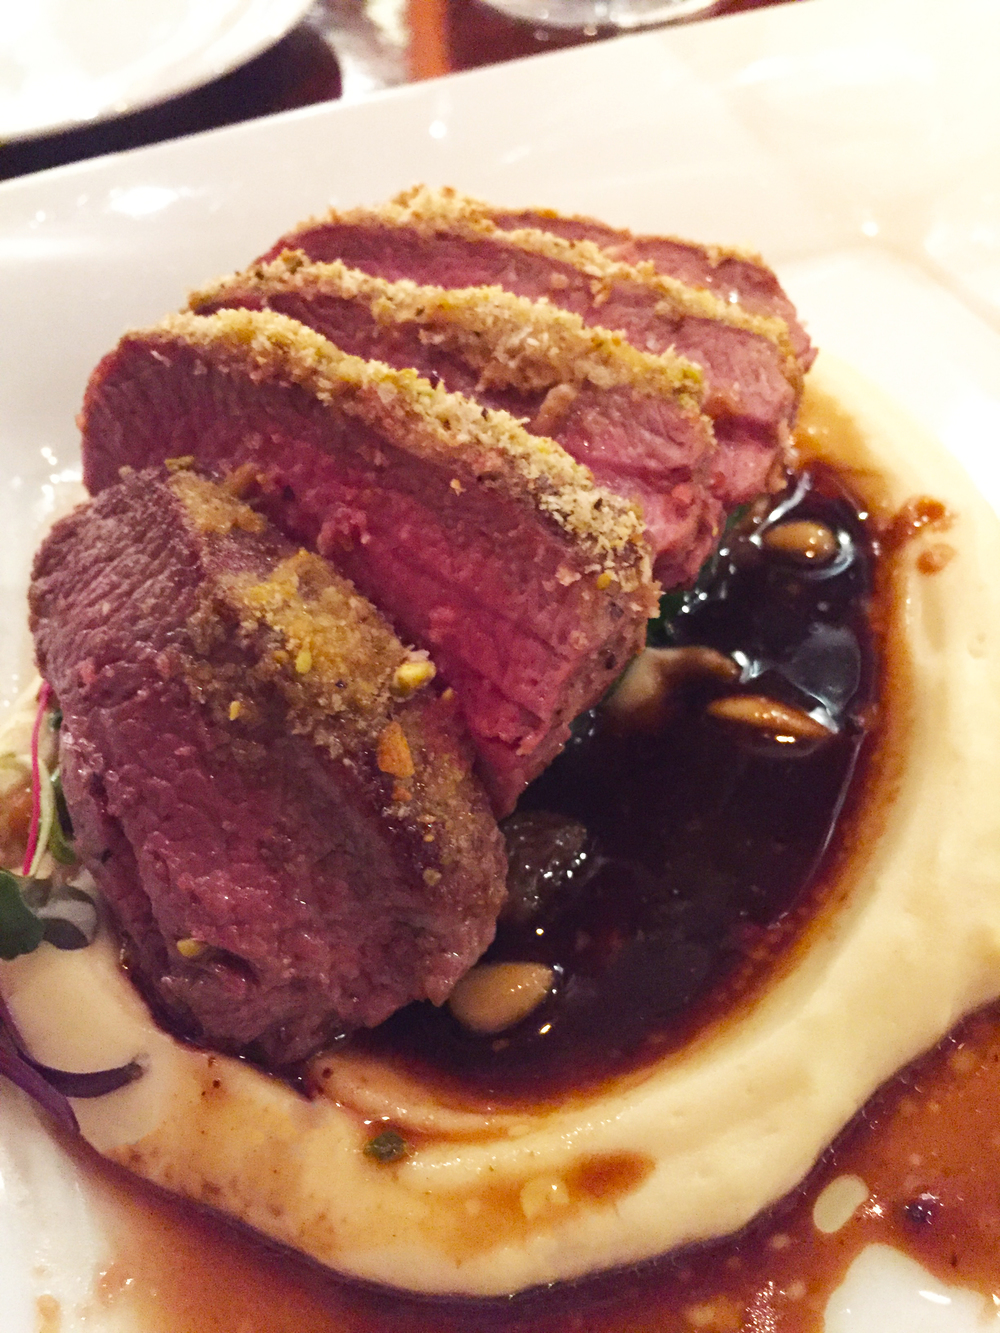 Colorado Lamb Loin with pistachio crust, celery root puree, catalan spinach, and black garlic jus.